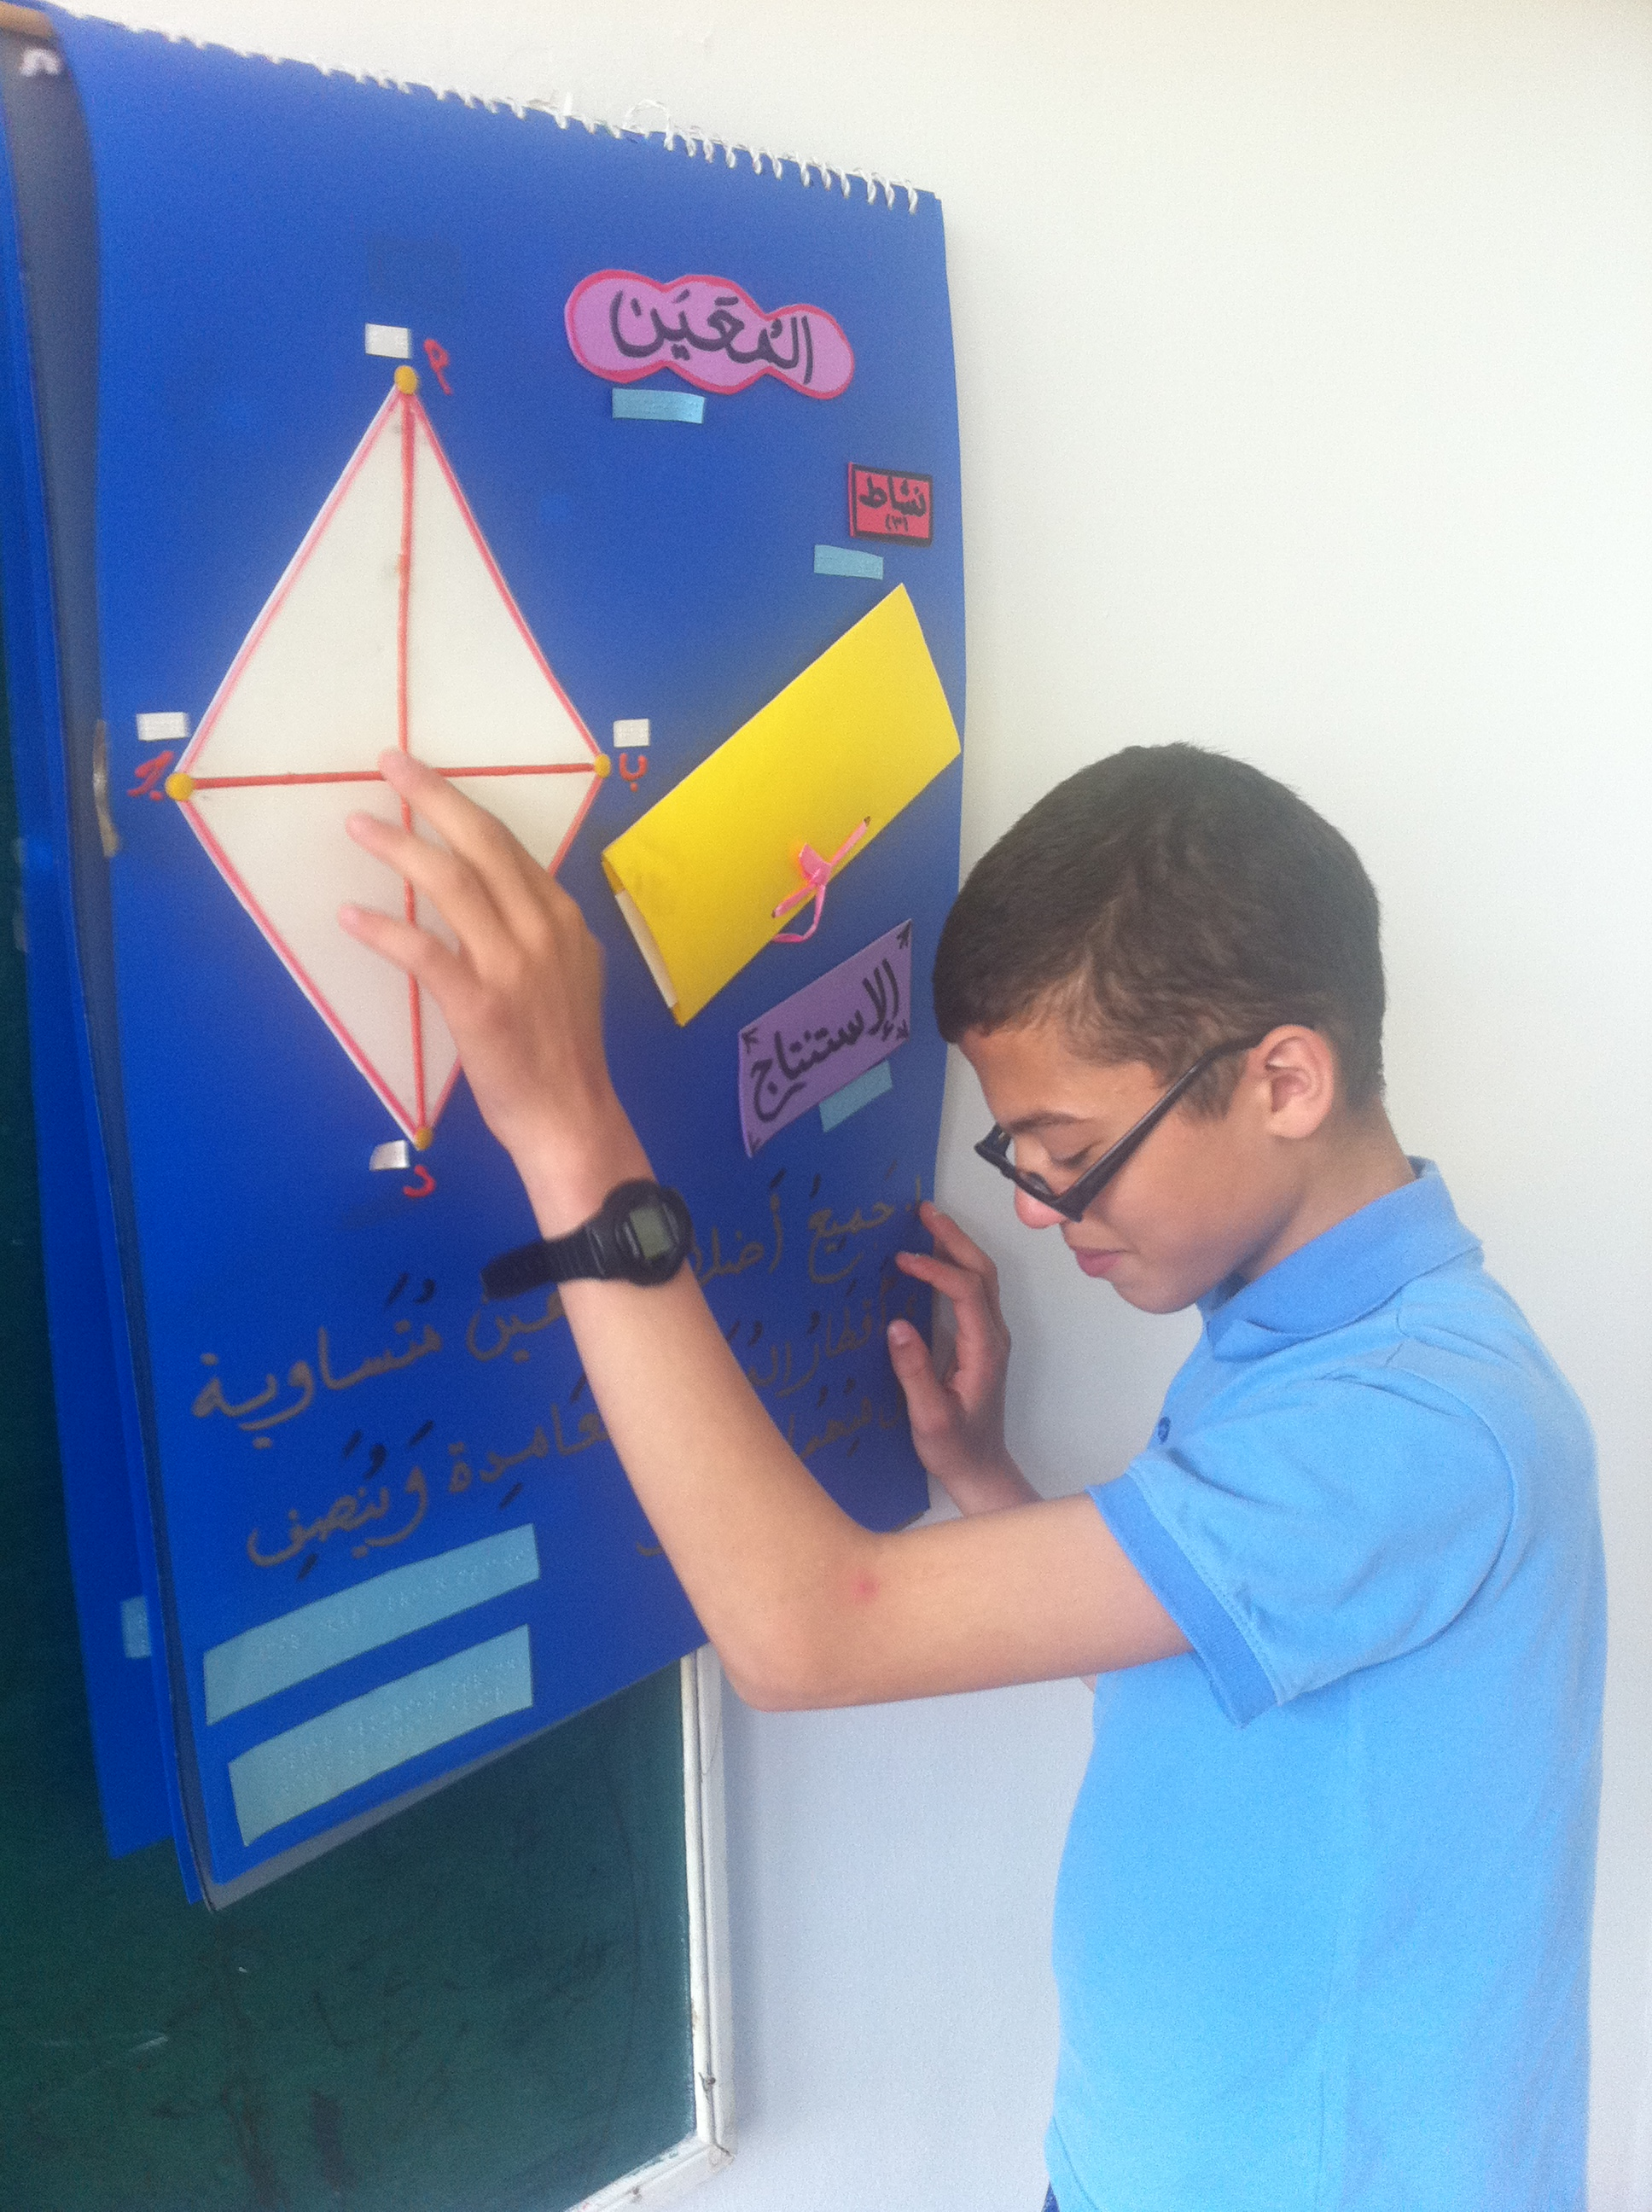 Using mathematical aids to learn mathematics for blind people